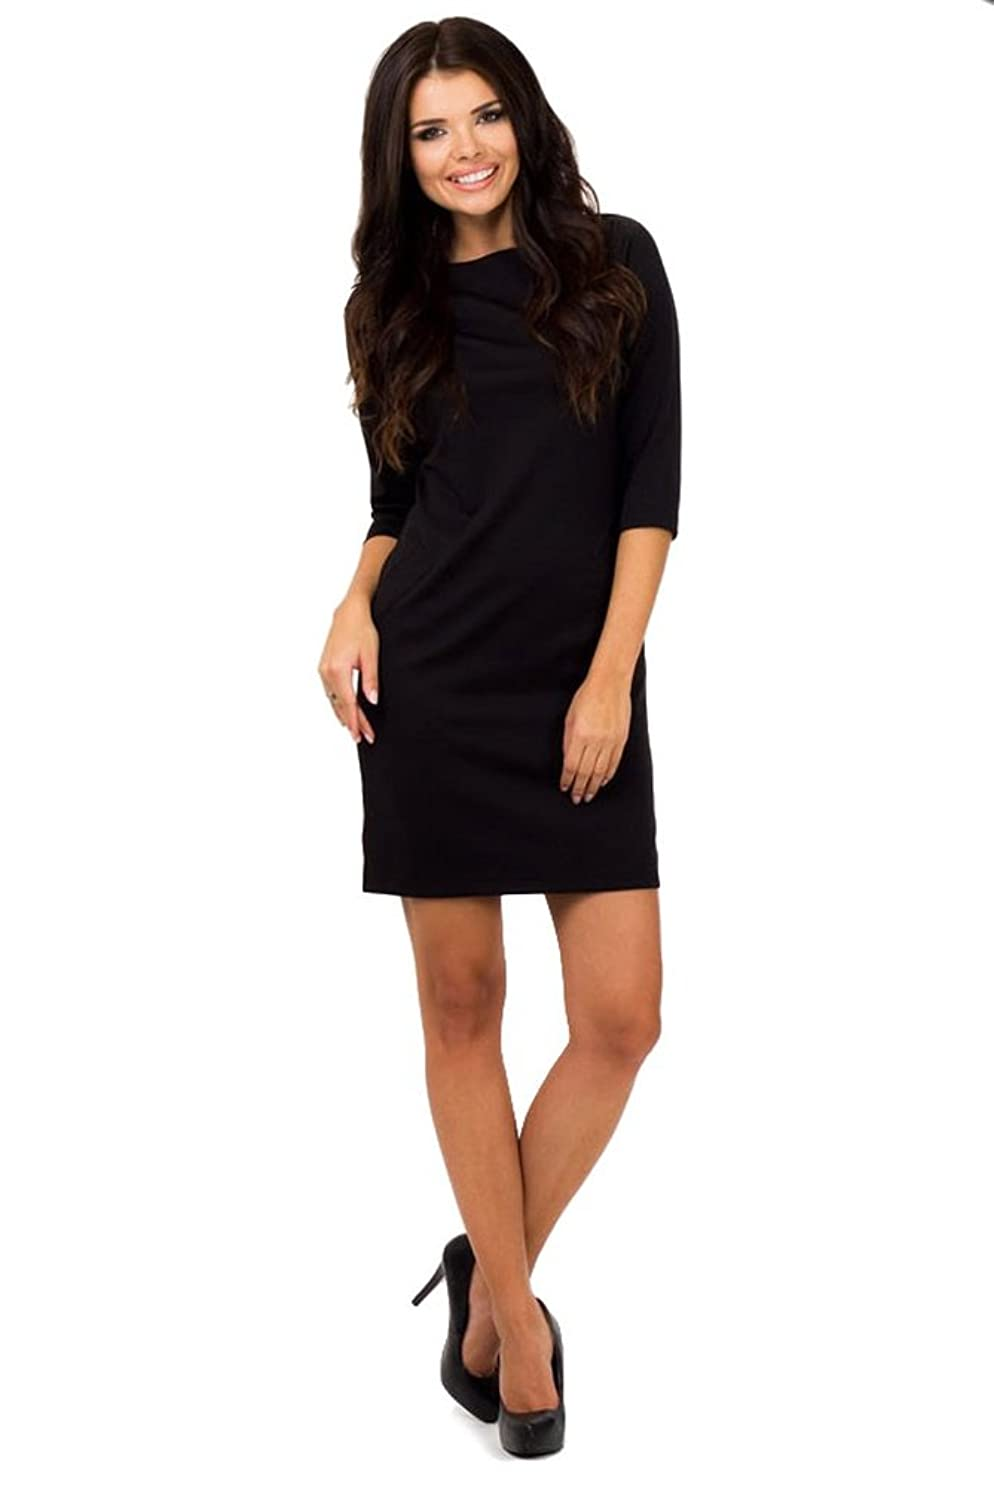 Berry? Women's Sexy Jersey Dress with Pockets 3/4 Sleeve Size 22 Black